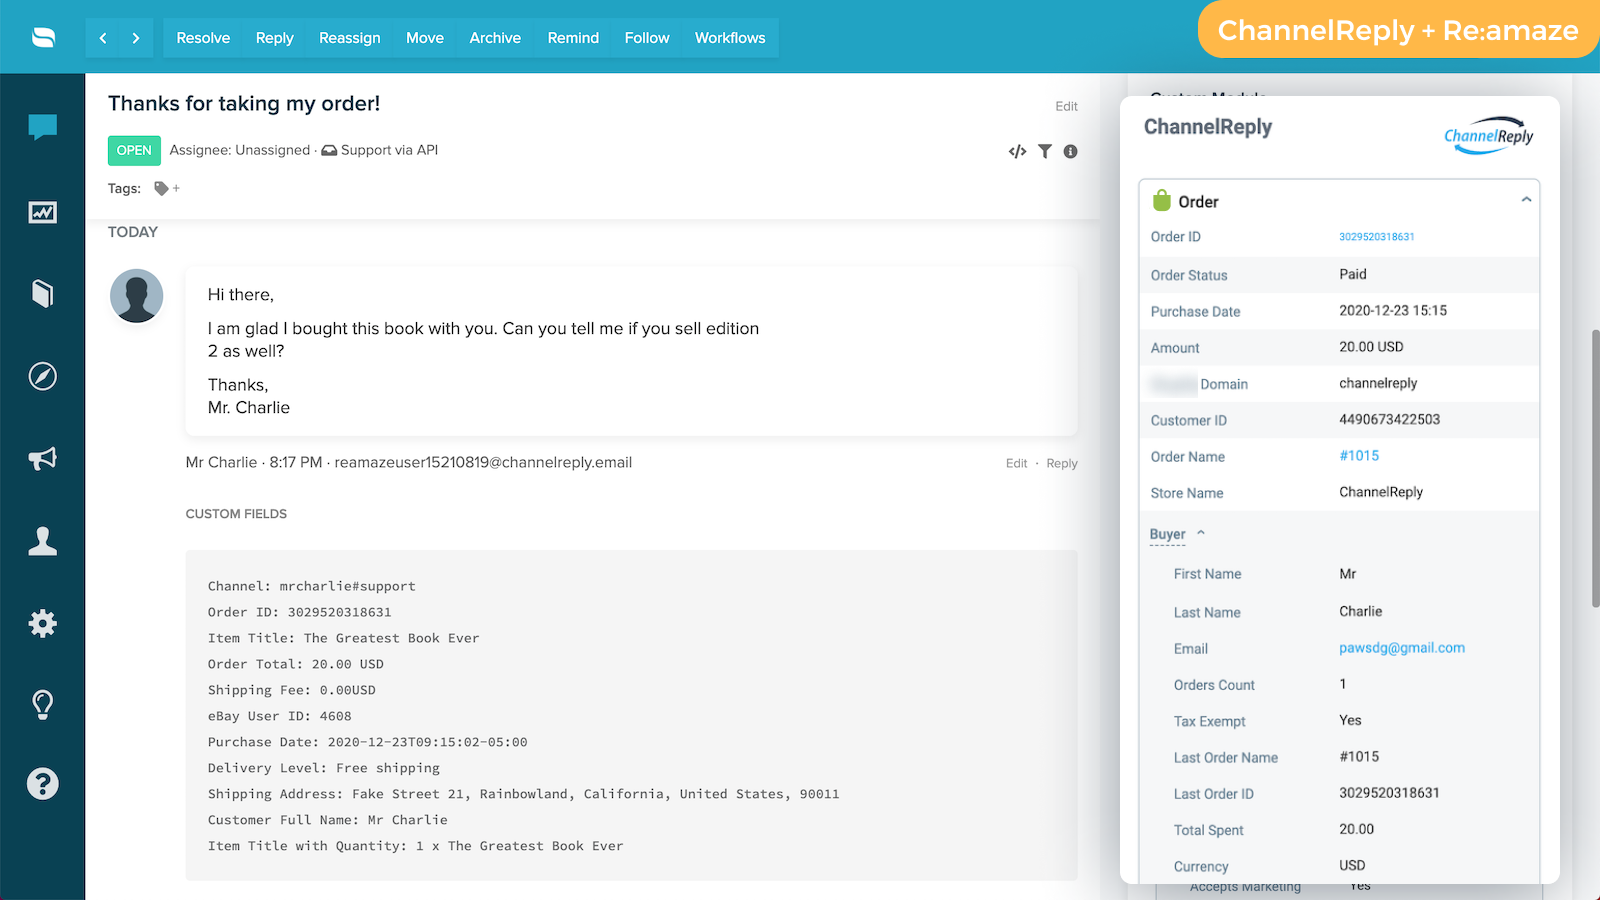 ChannelReply's Re:amaze-Shopify integration in action